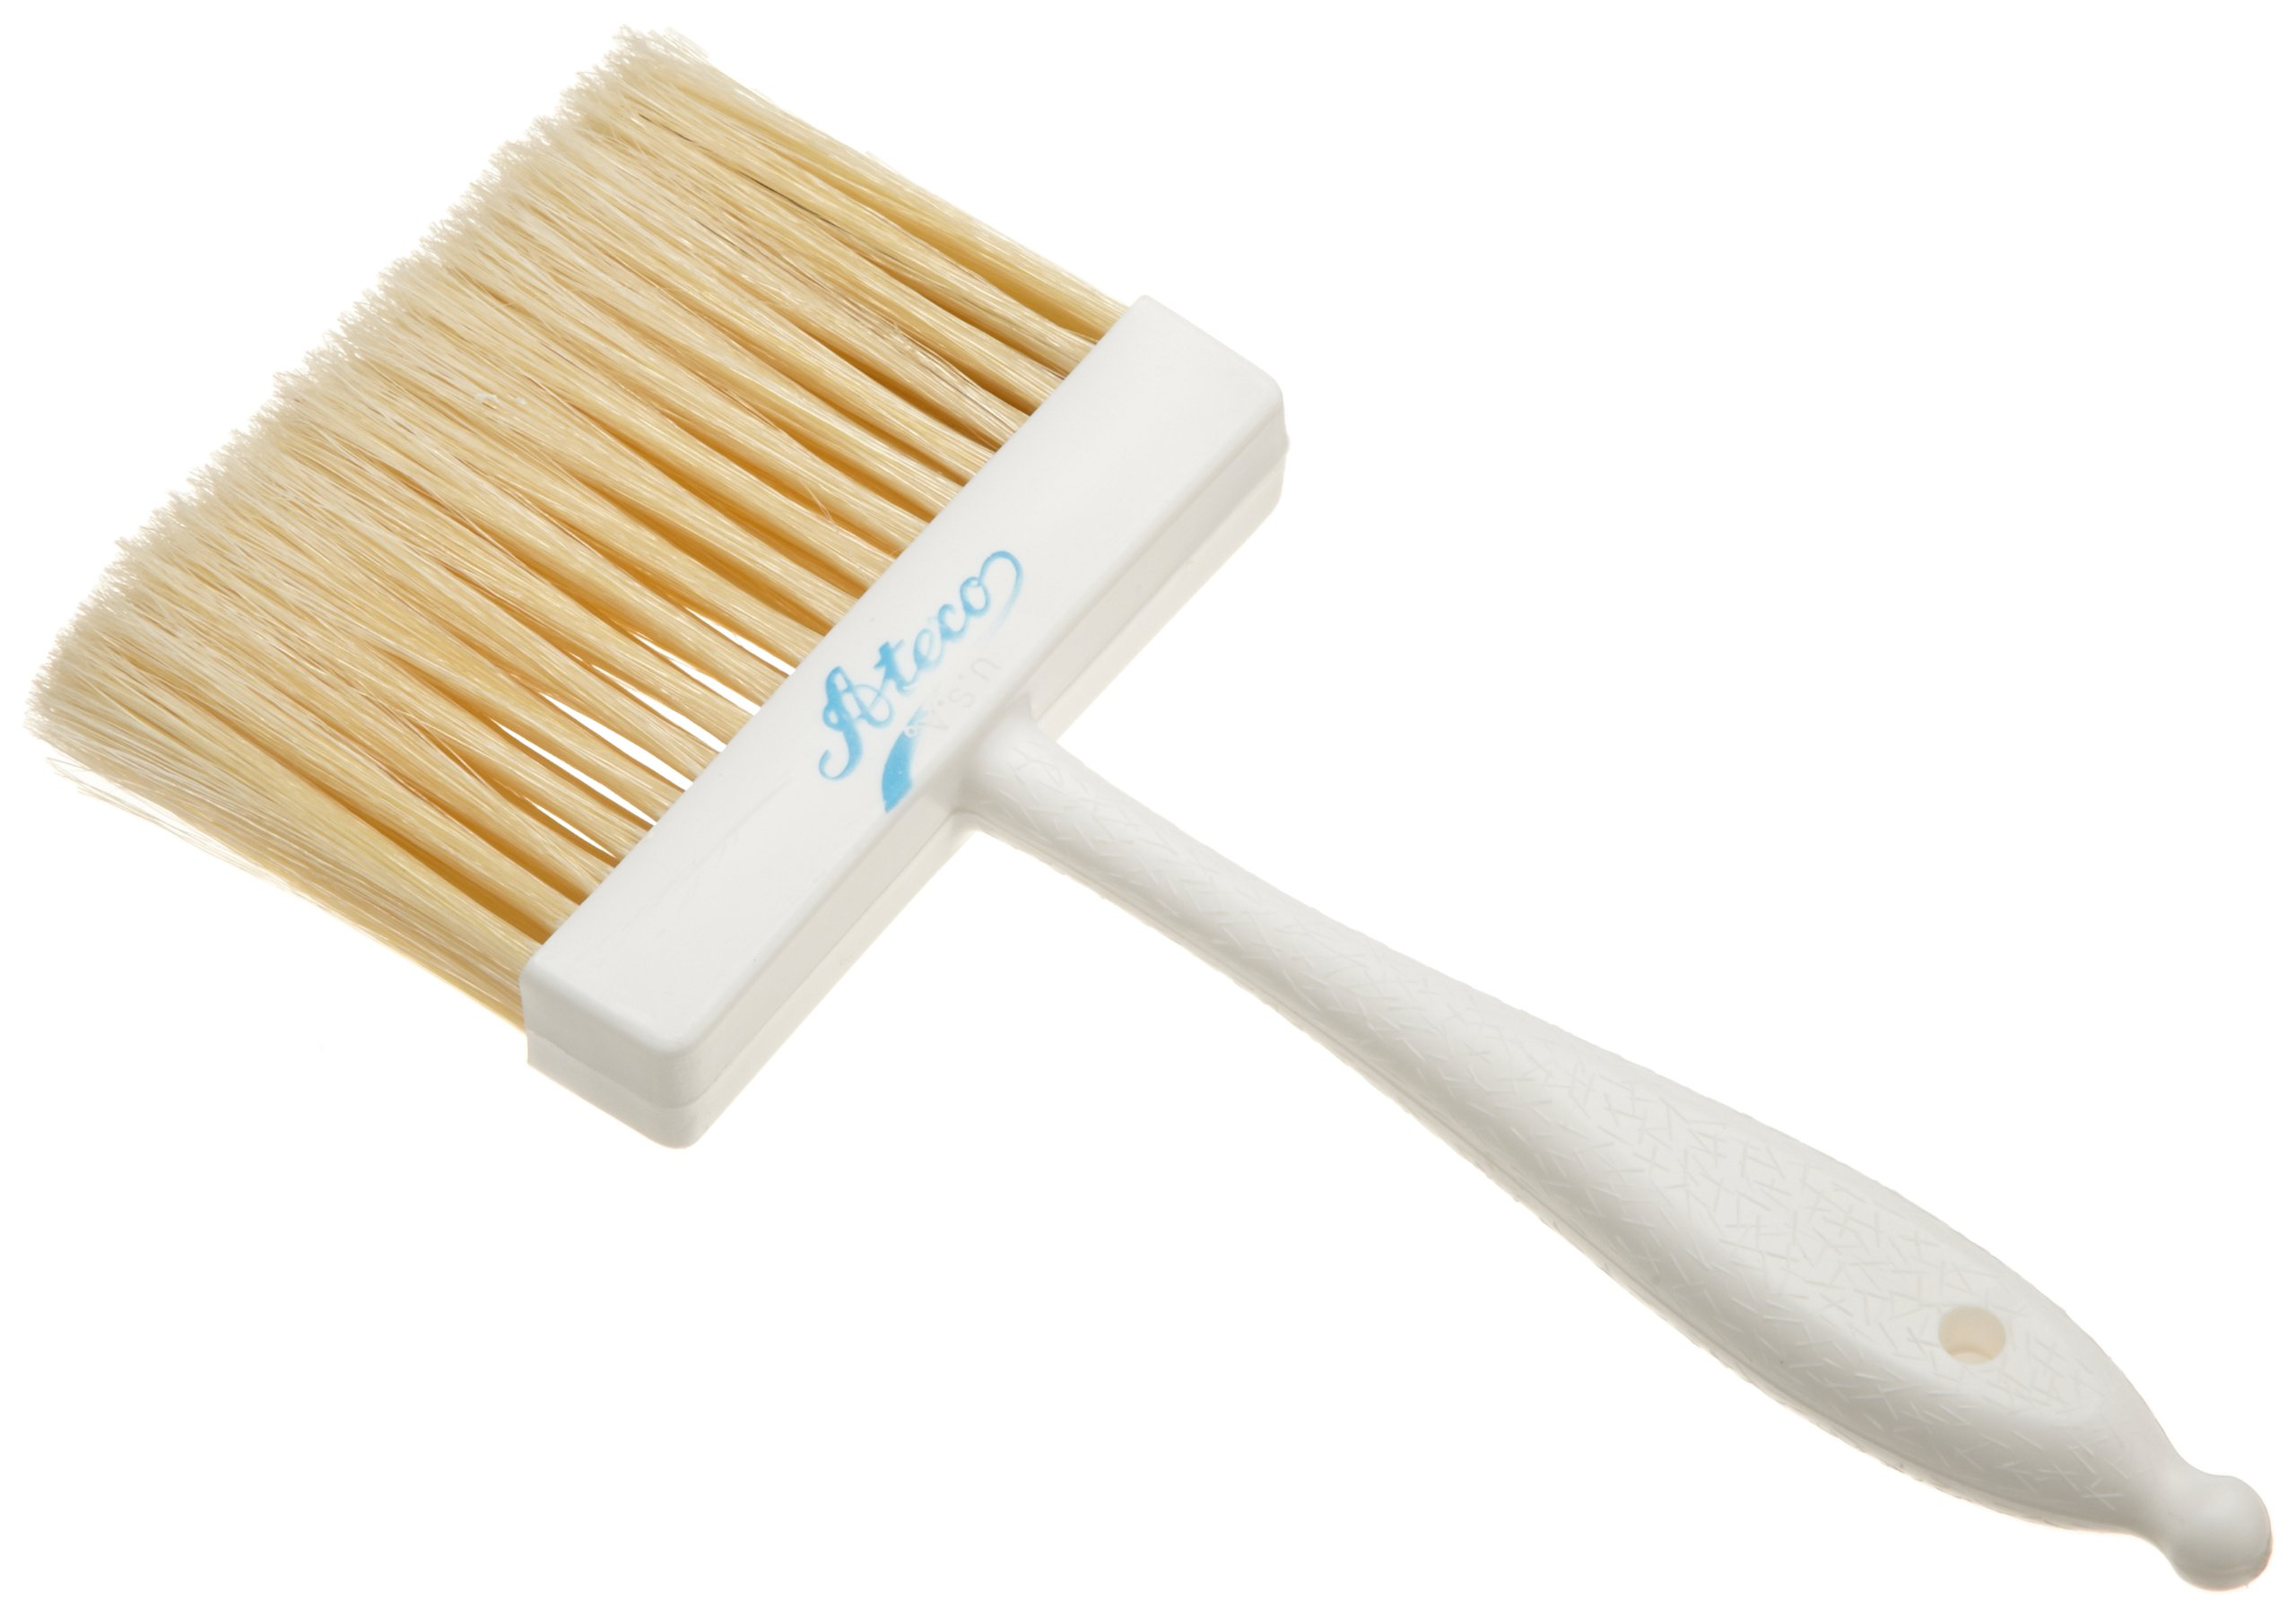 Ateco 1674 Pastry Brush, 4-Inch Wide Head with Natural White Boar Bristles & Molded Plastic Handle by Ateco